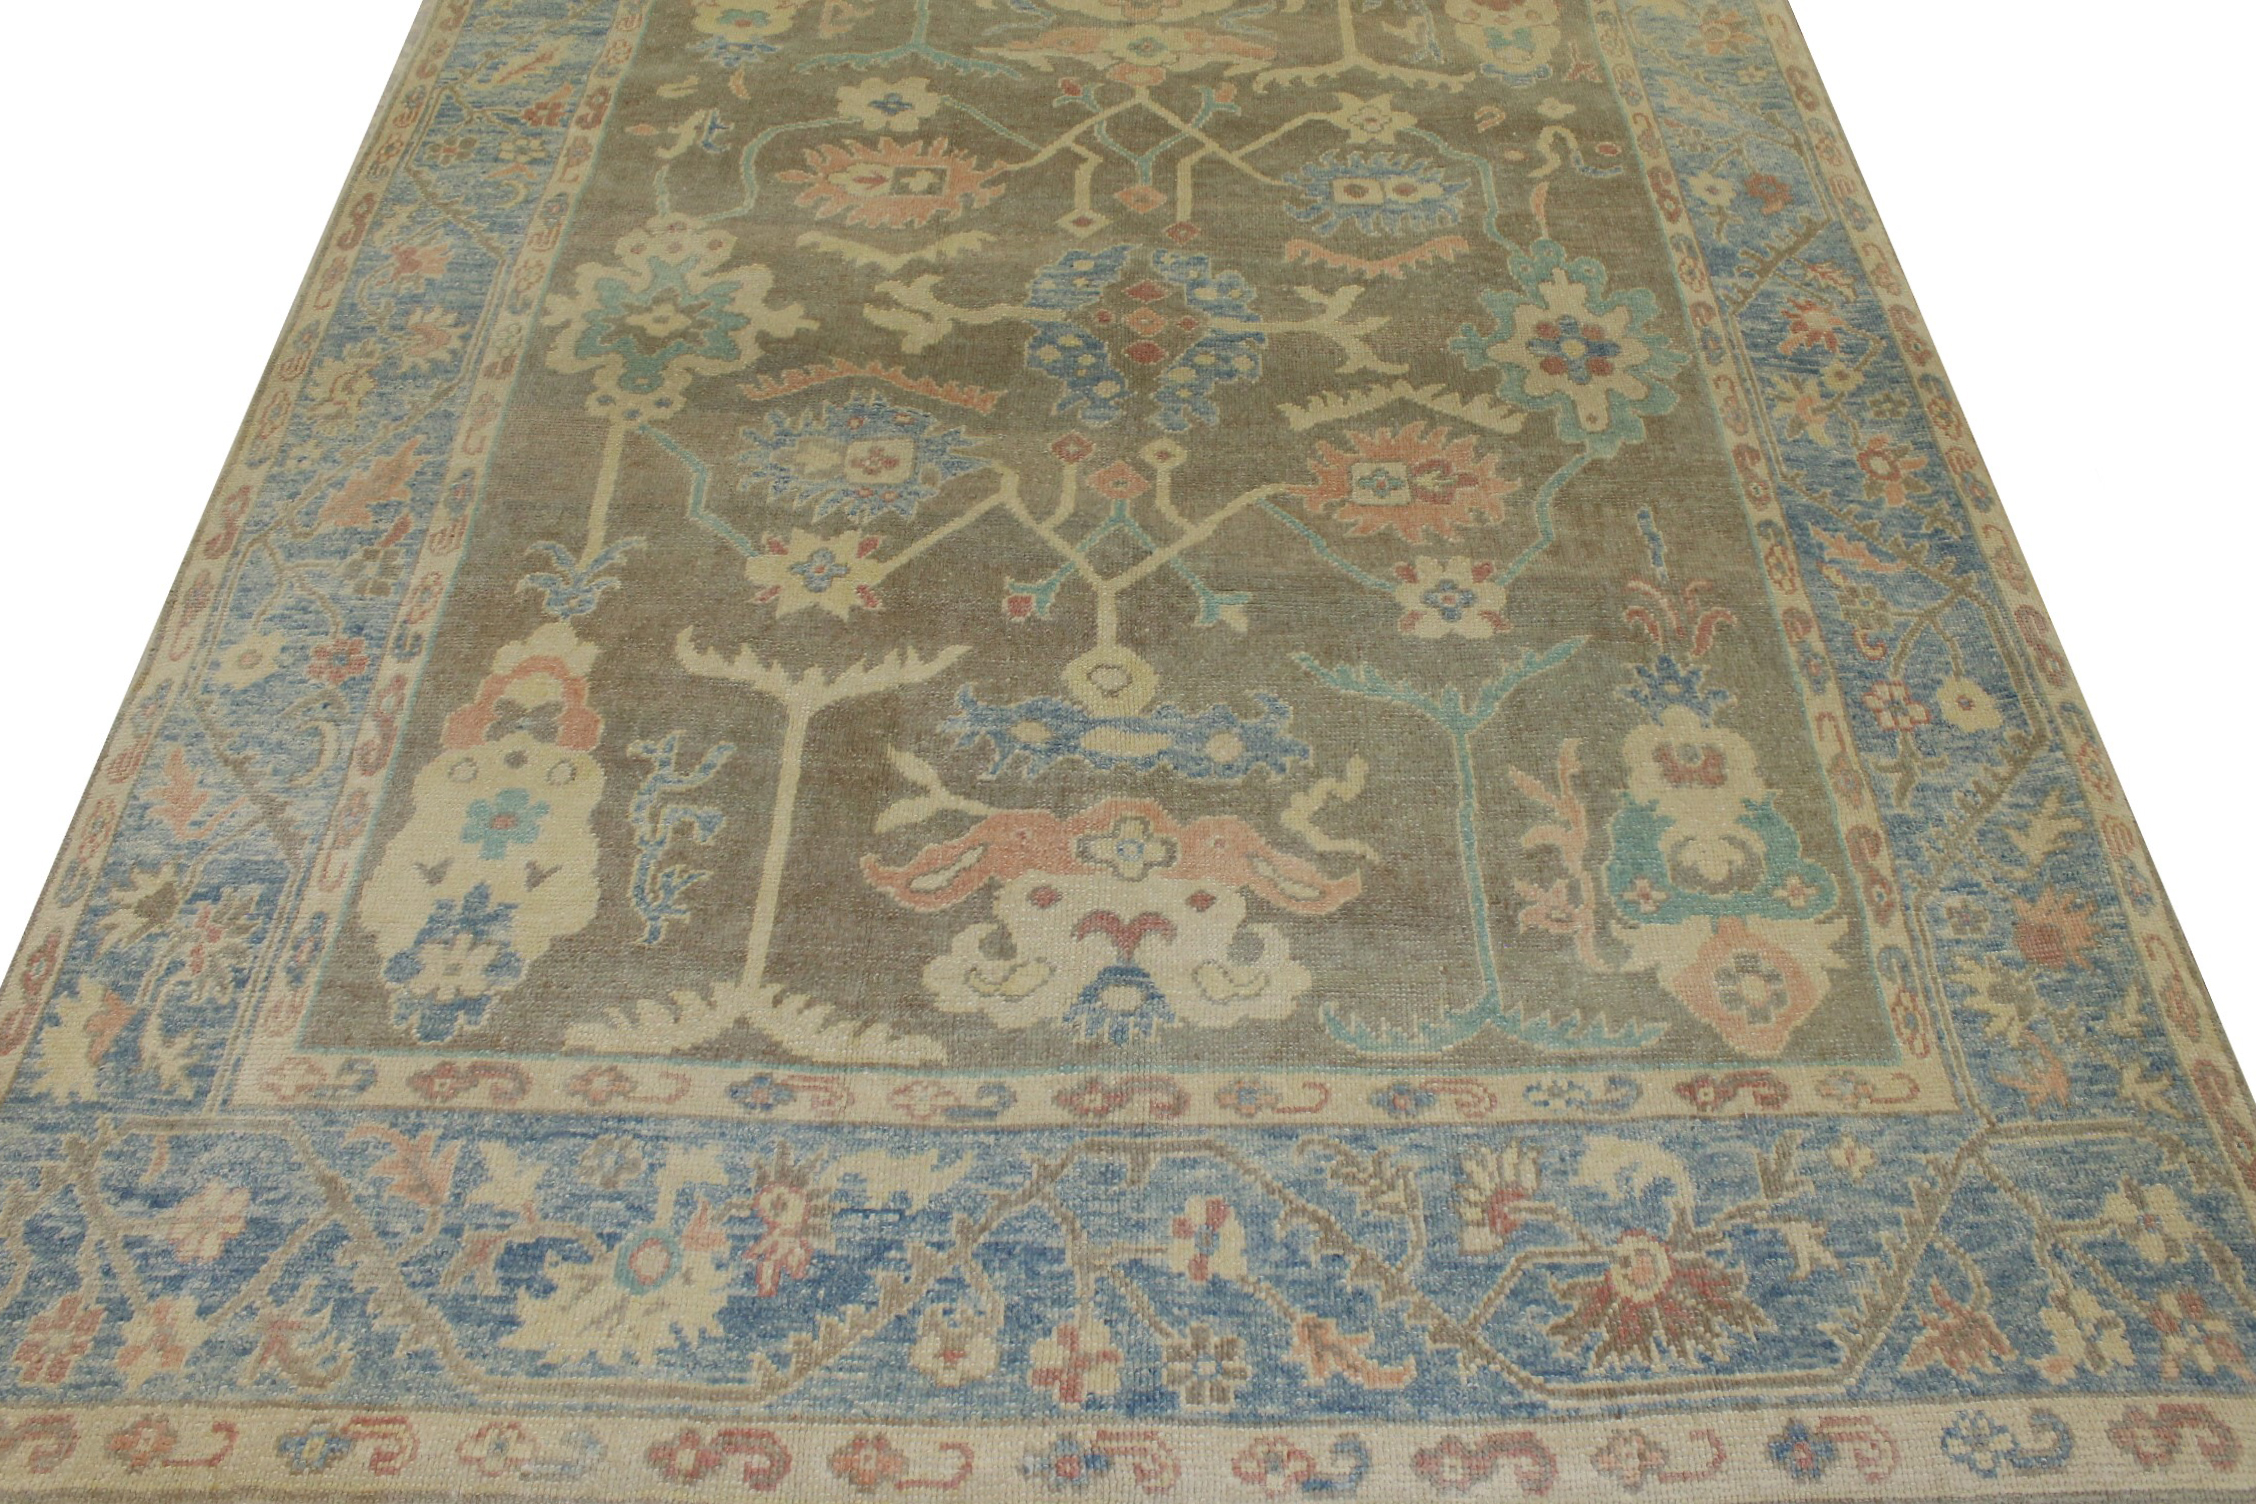 9x12 Oushak Hand Knotted Wool Area Rug - MR023449